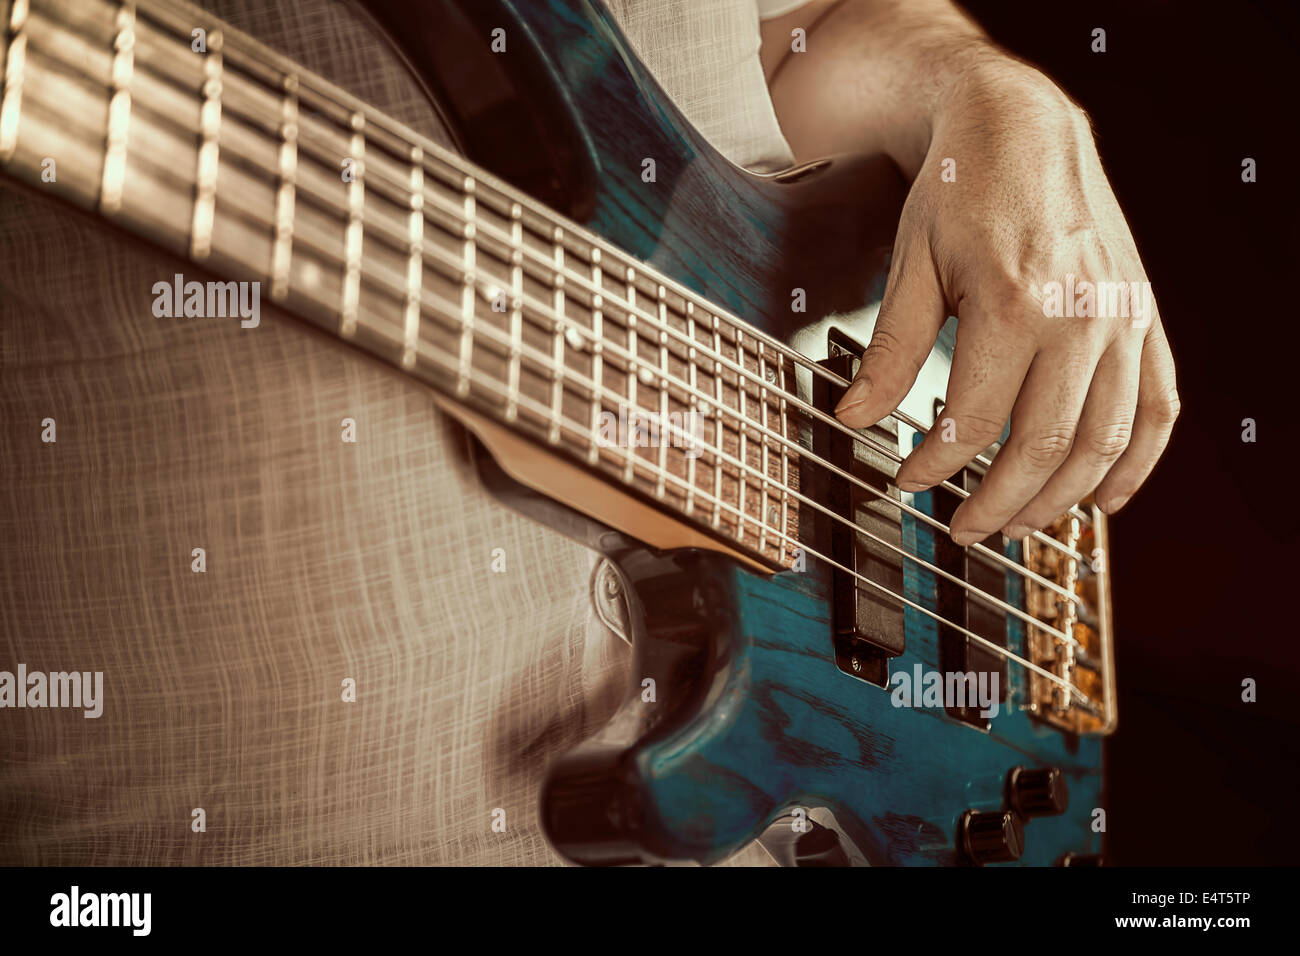 guitarist playing bas guitars, vintage image - Stock Image